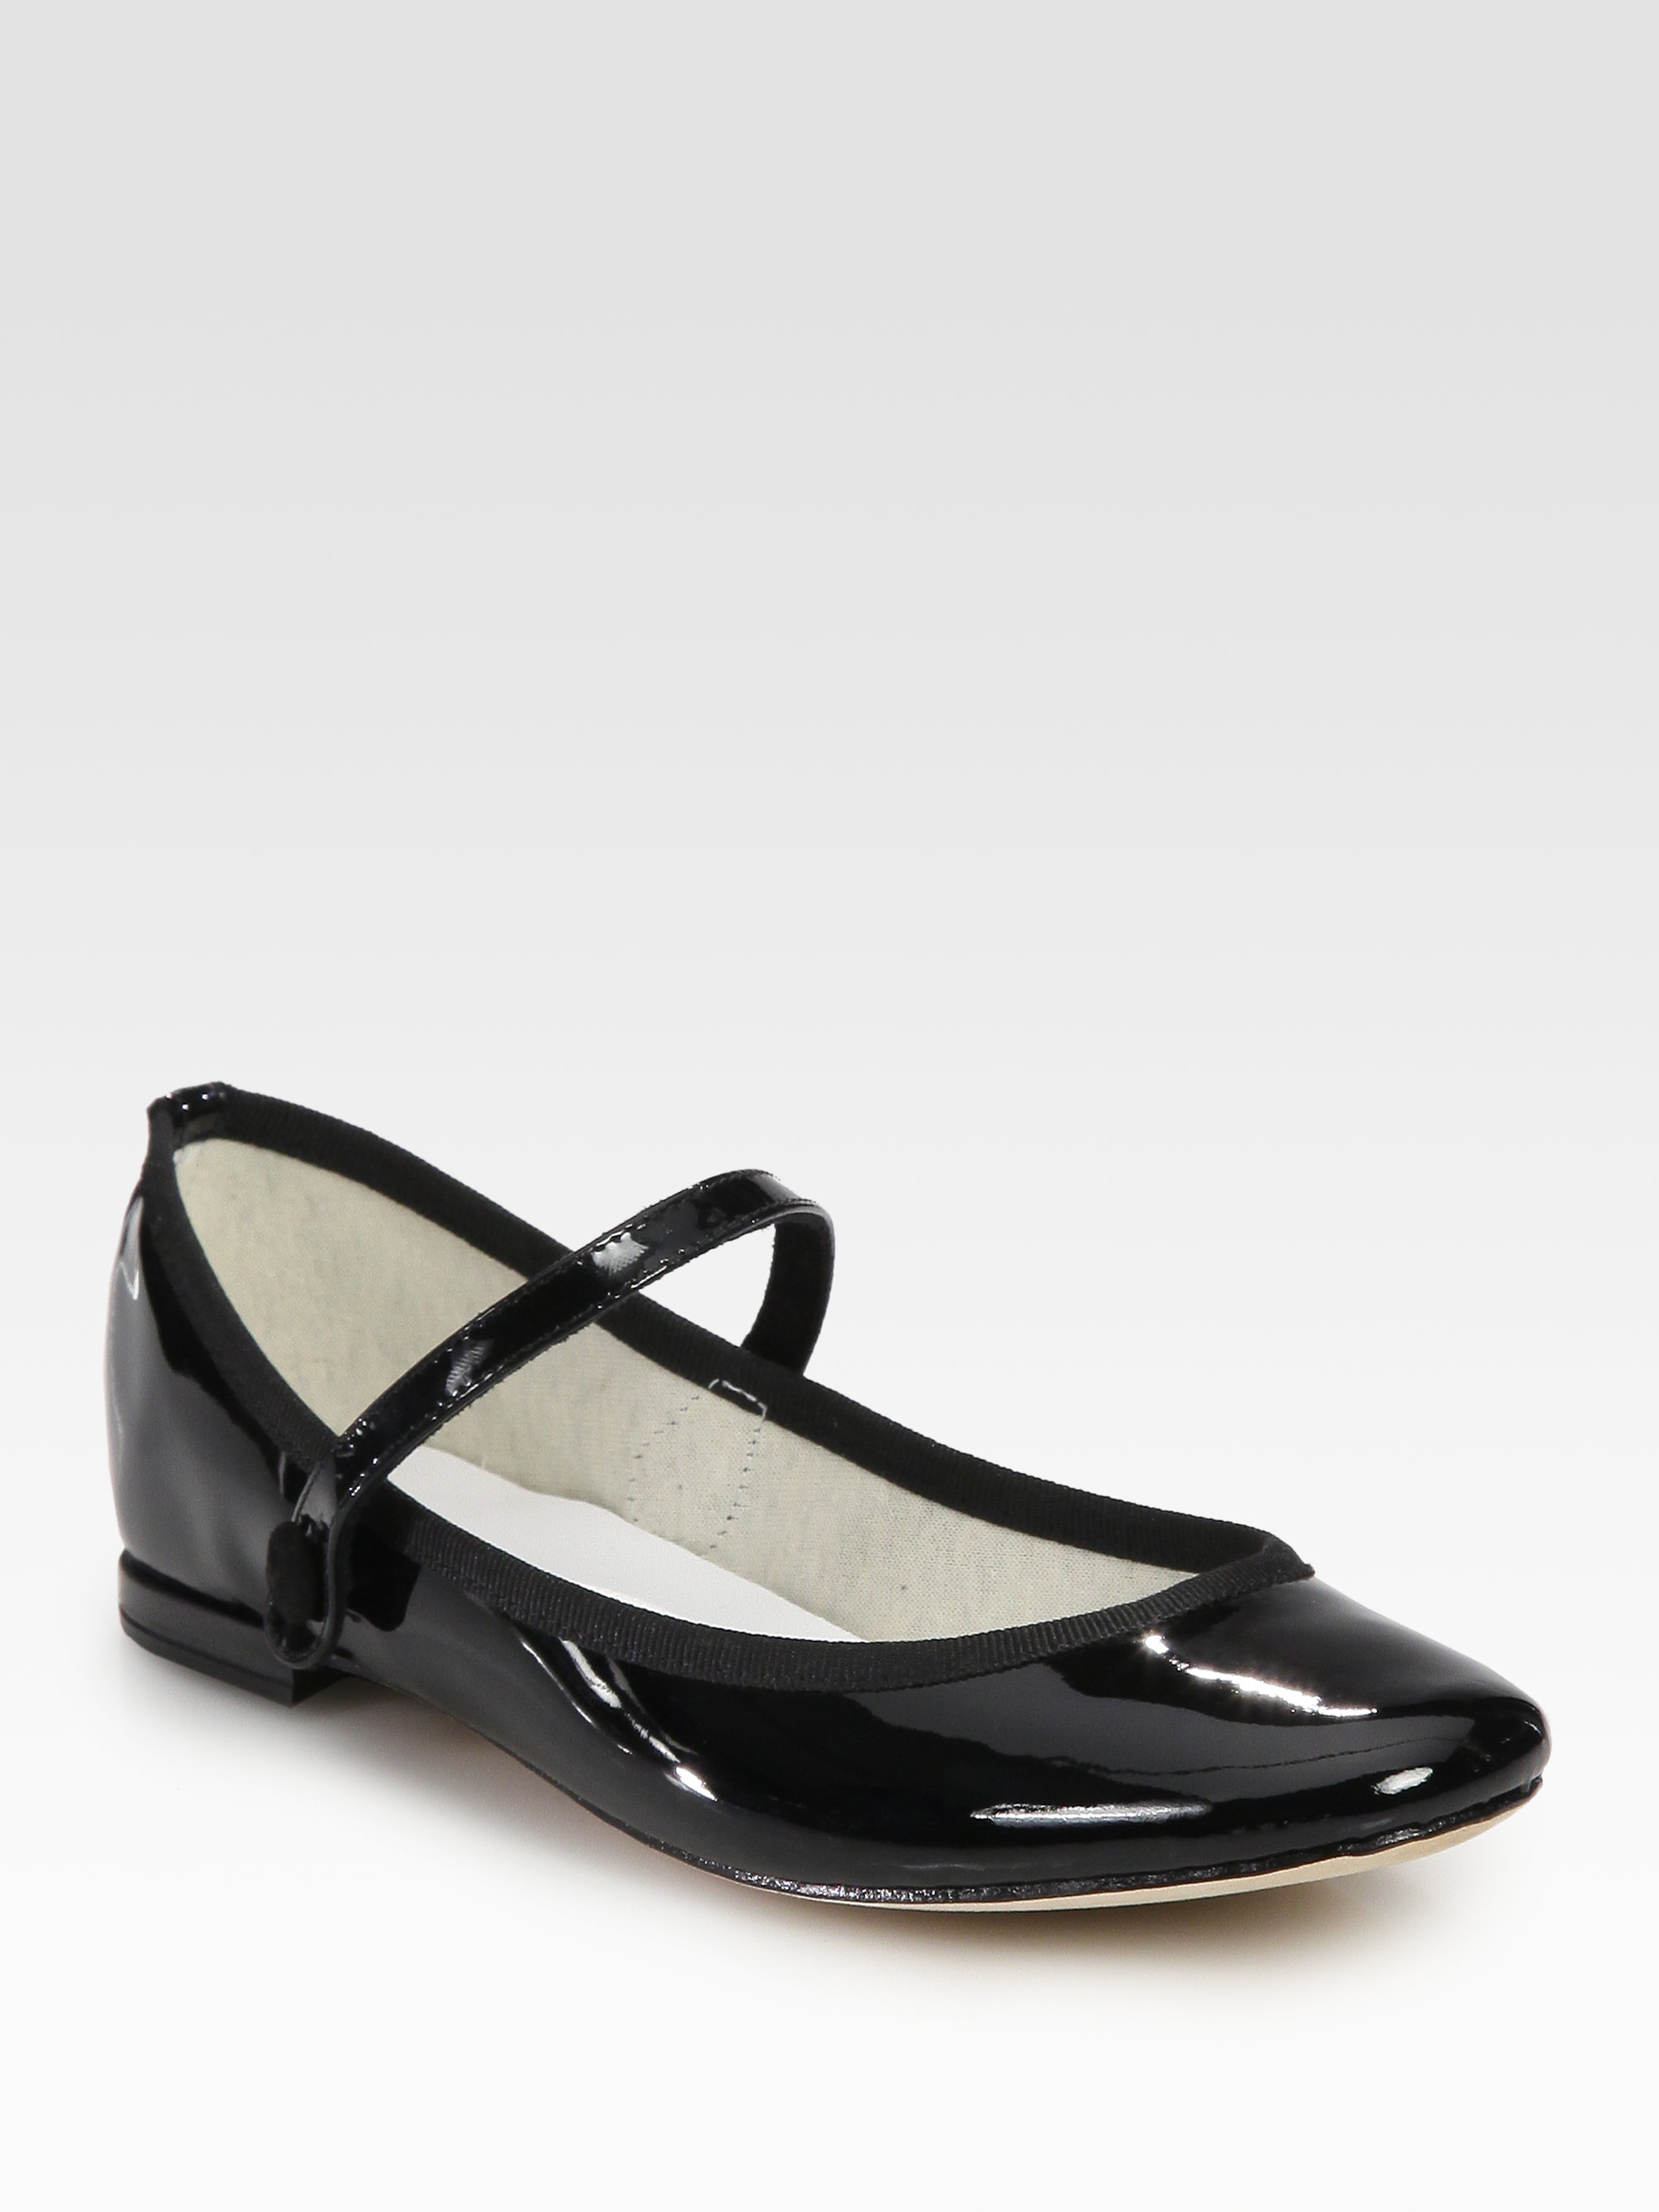 Lyst - Repetto Lio Patent Leather Mary Jane Ballet Flats in Black db9b83173